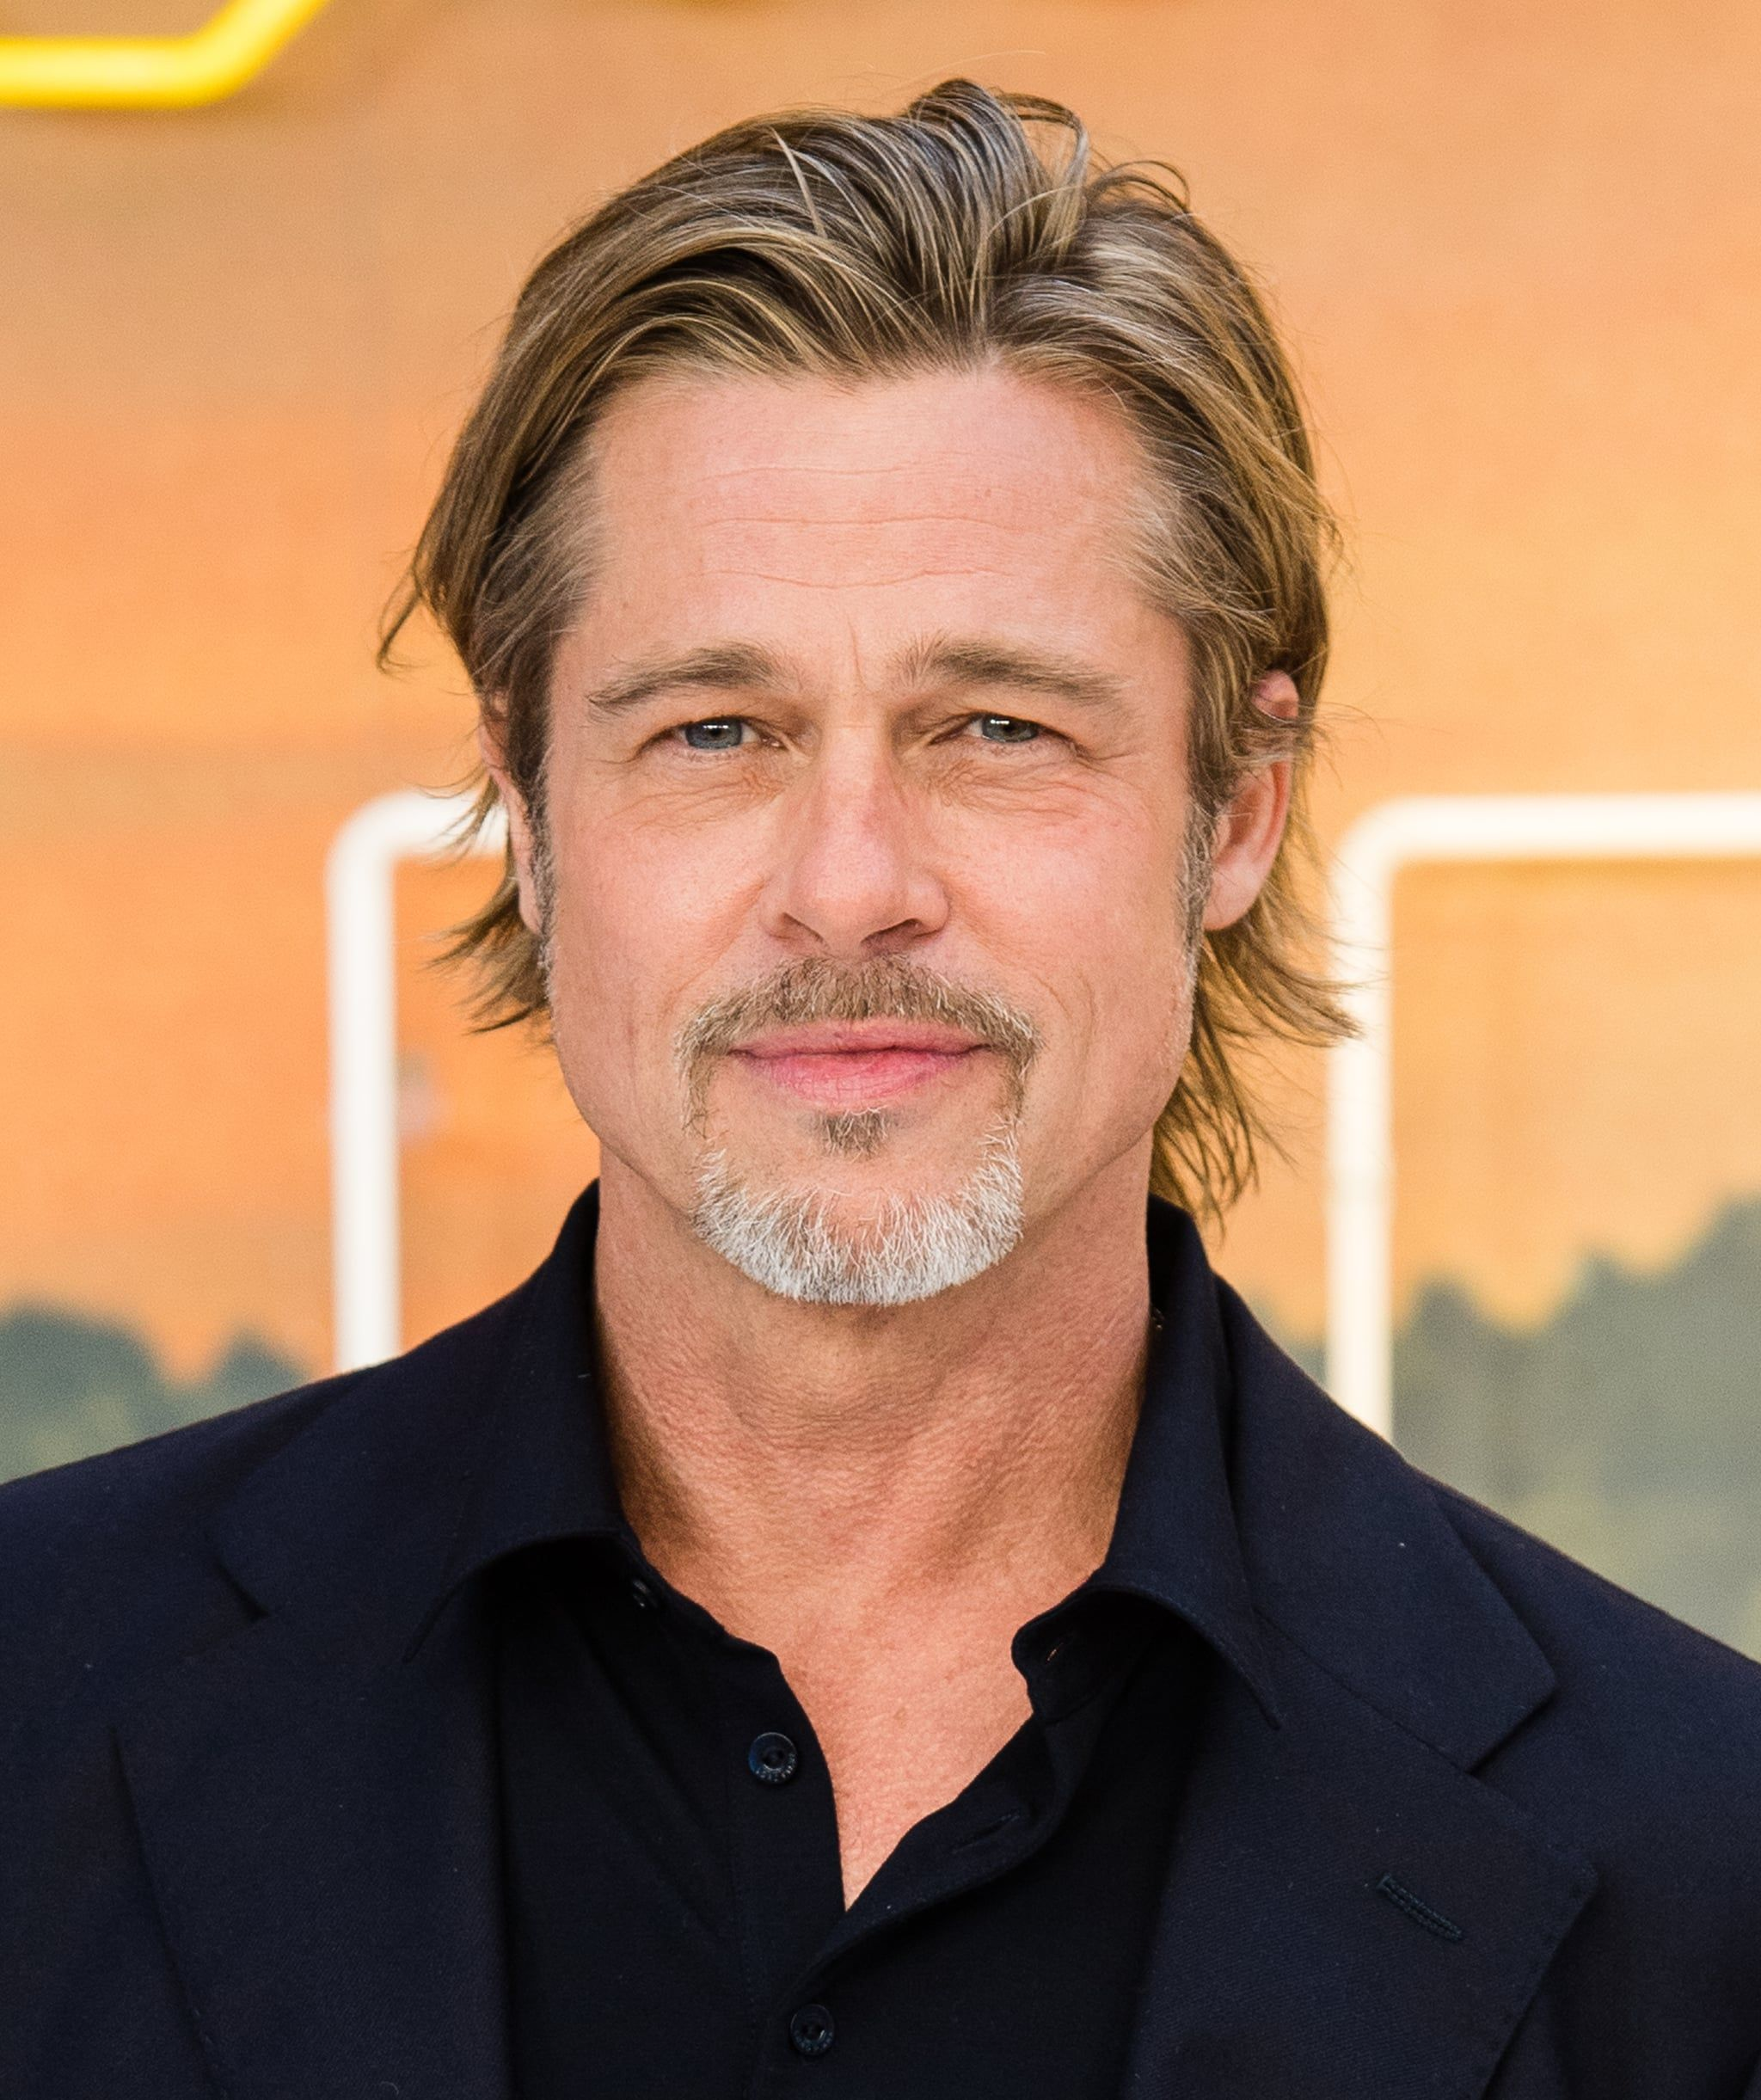 Brad Pitt Is Just Going To Be Gorgeous Forever Huh Brad Pitt Hair Brad Pitt Haircuts For Men